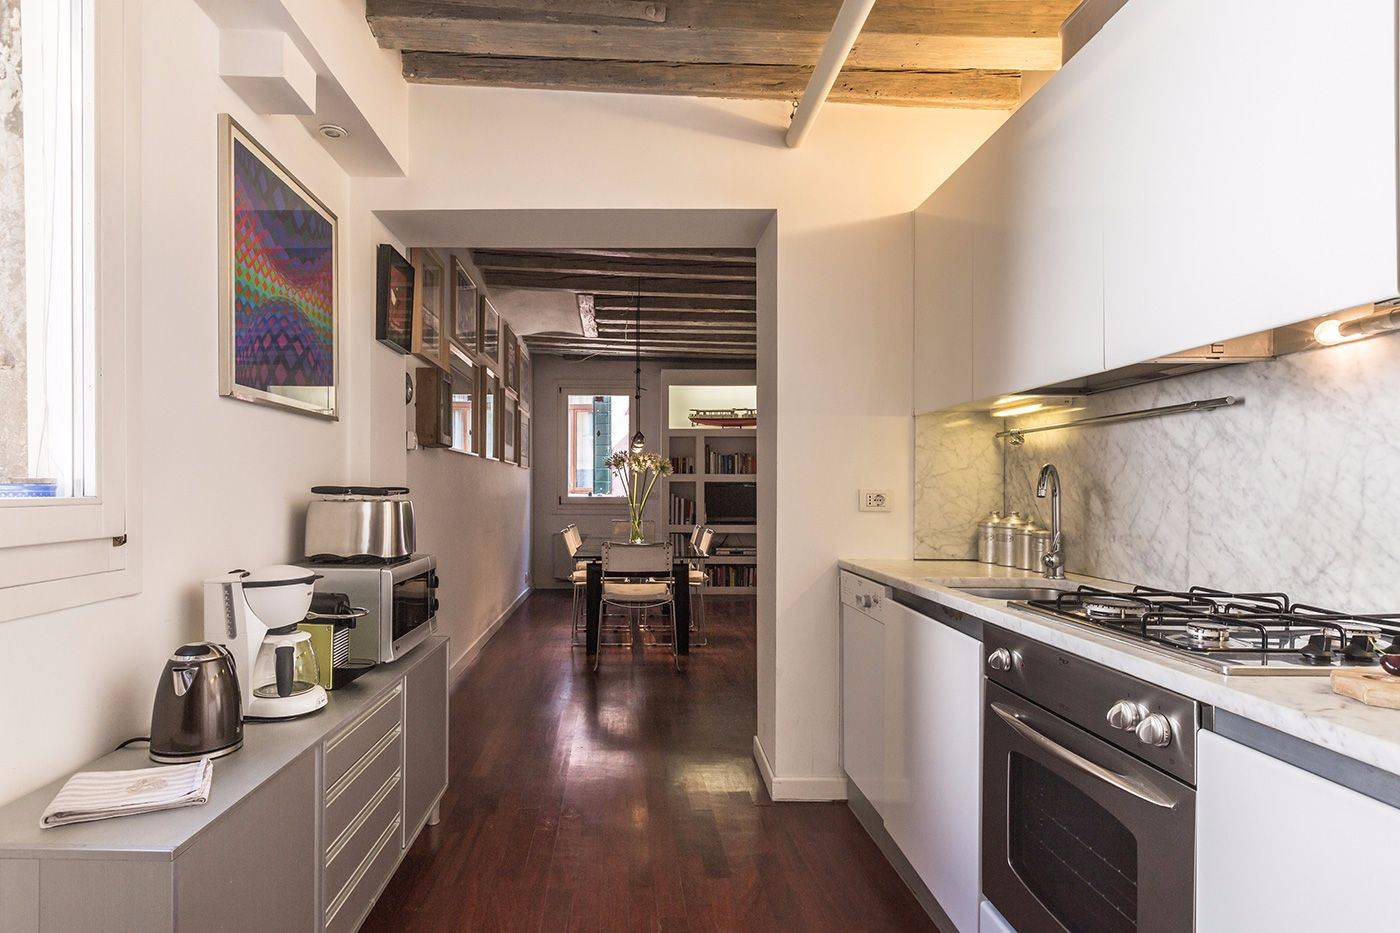 the bright and functional kitchen of the Foscarina apartment